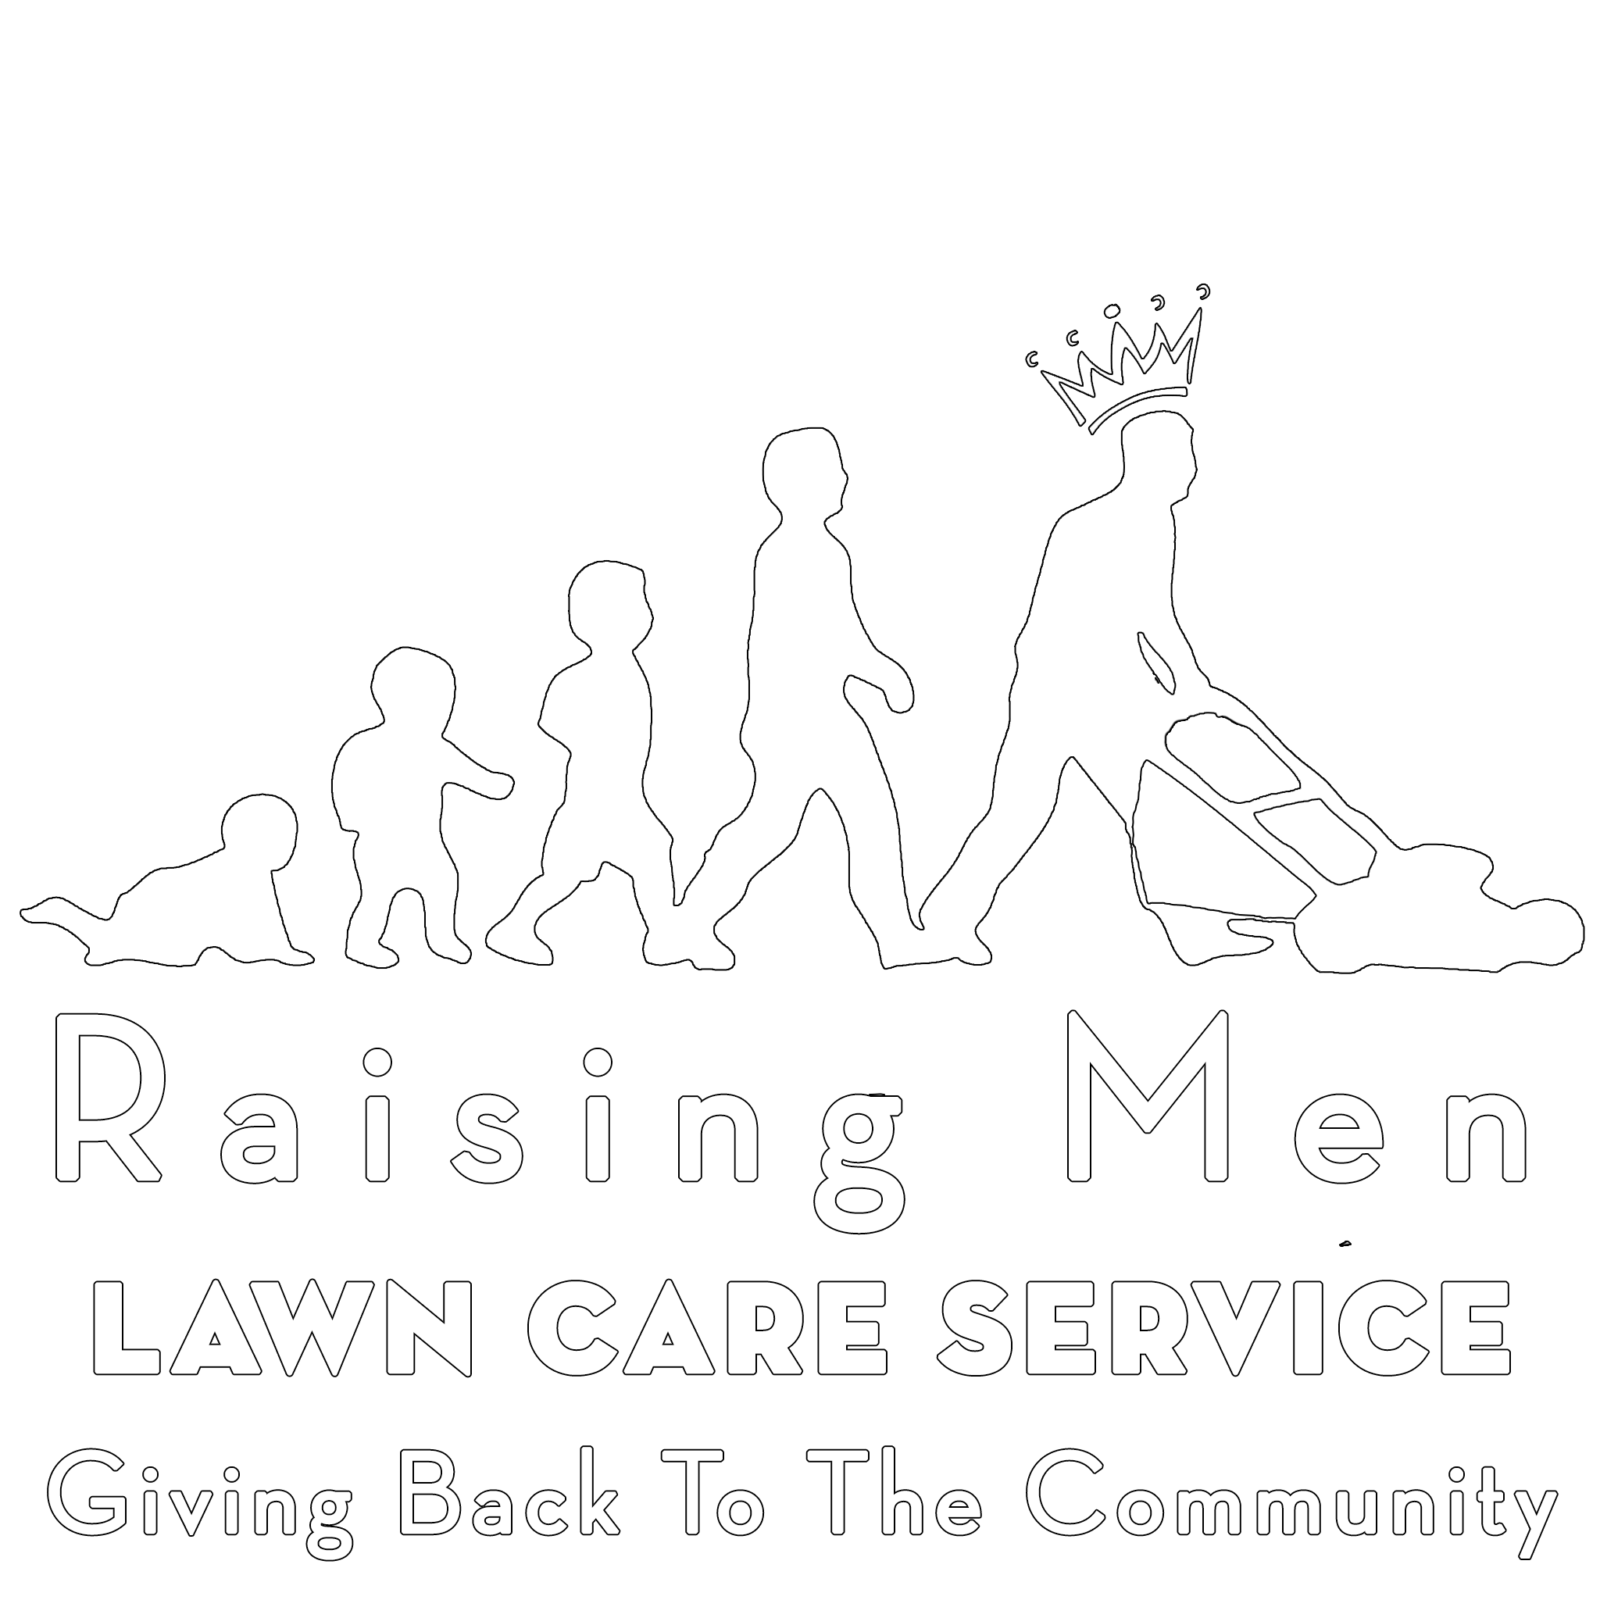 Raising Men Lawn Care Service – Making a Difference One Lawn